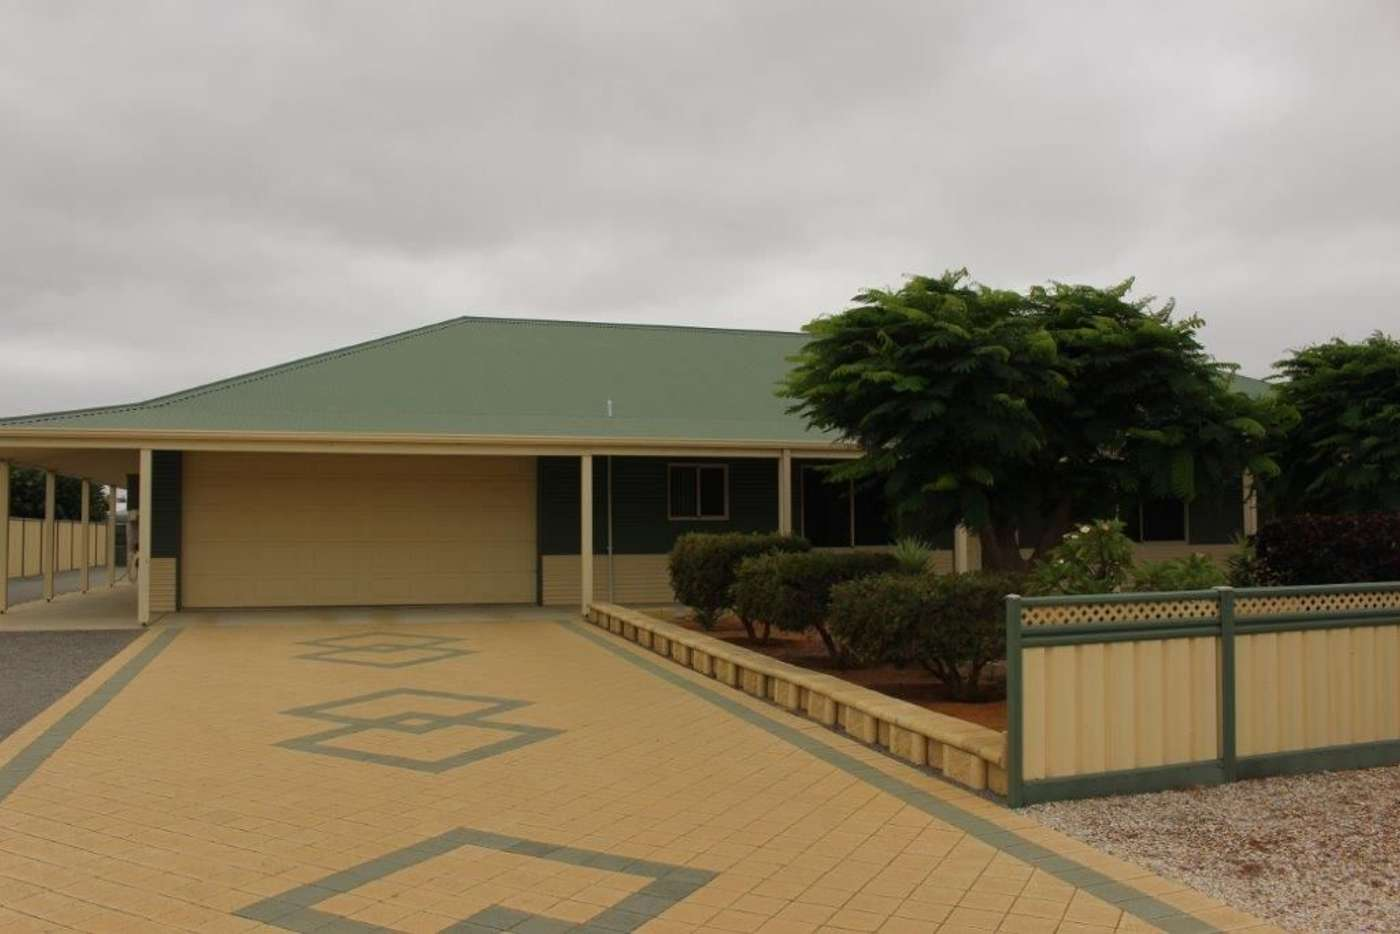 Main view of Homely house listing, 5 Bayliss Road, Dongara WA 6525